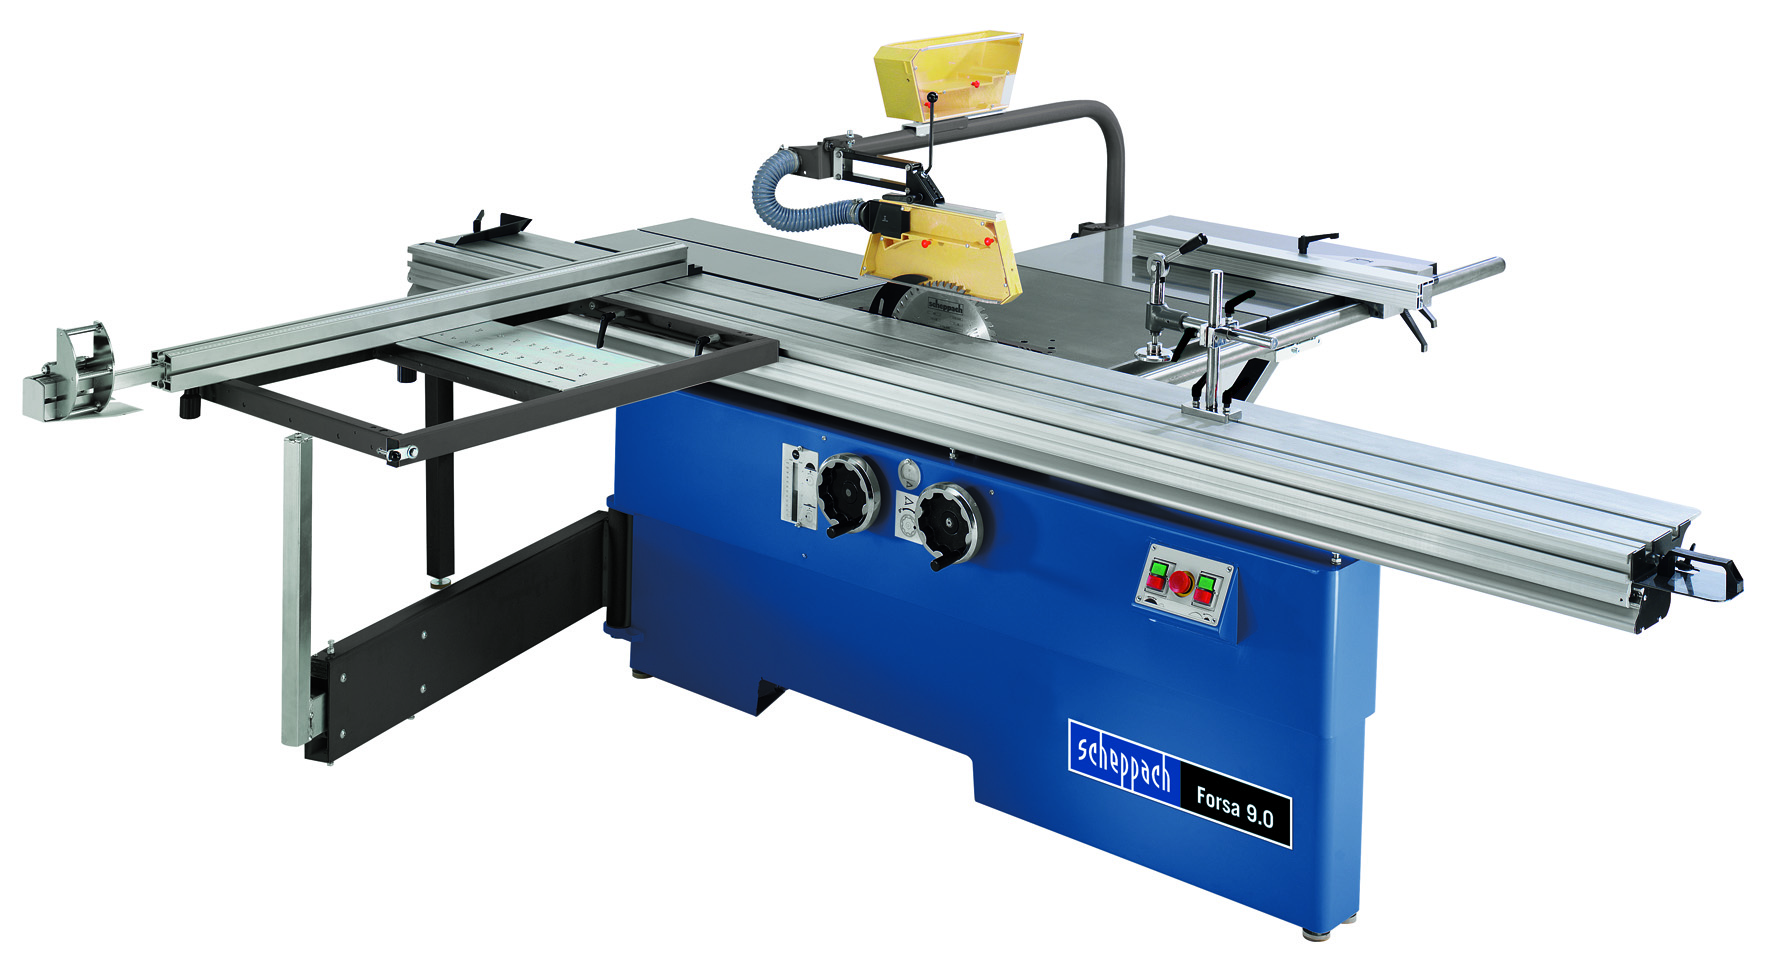 Forsa 9.0 sliding table saw from Scheppach with optional accessories